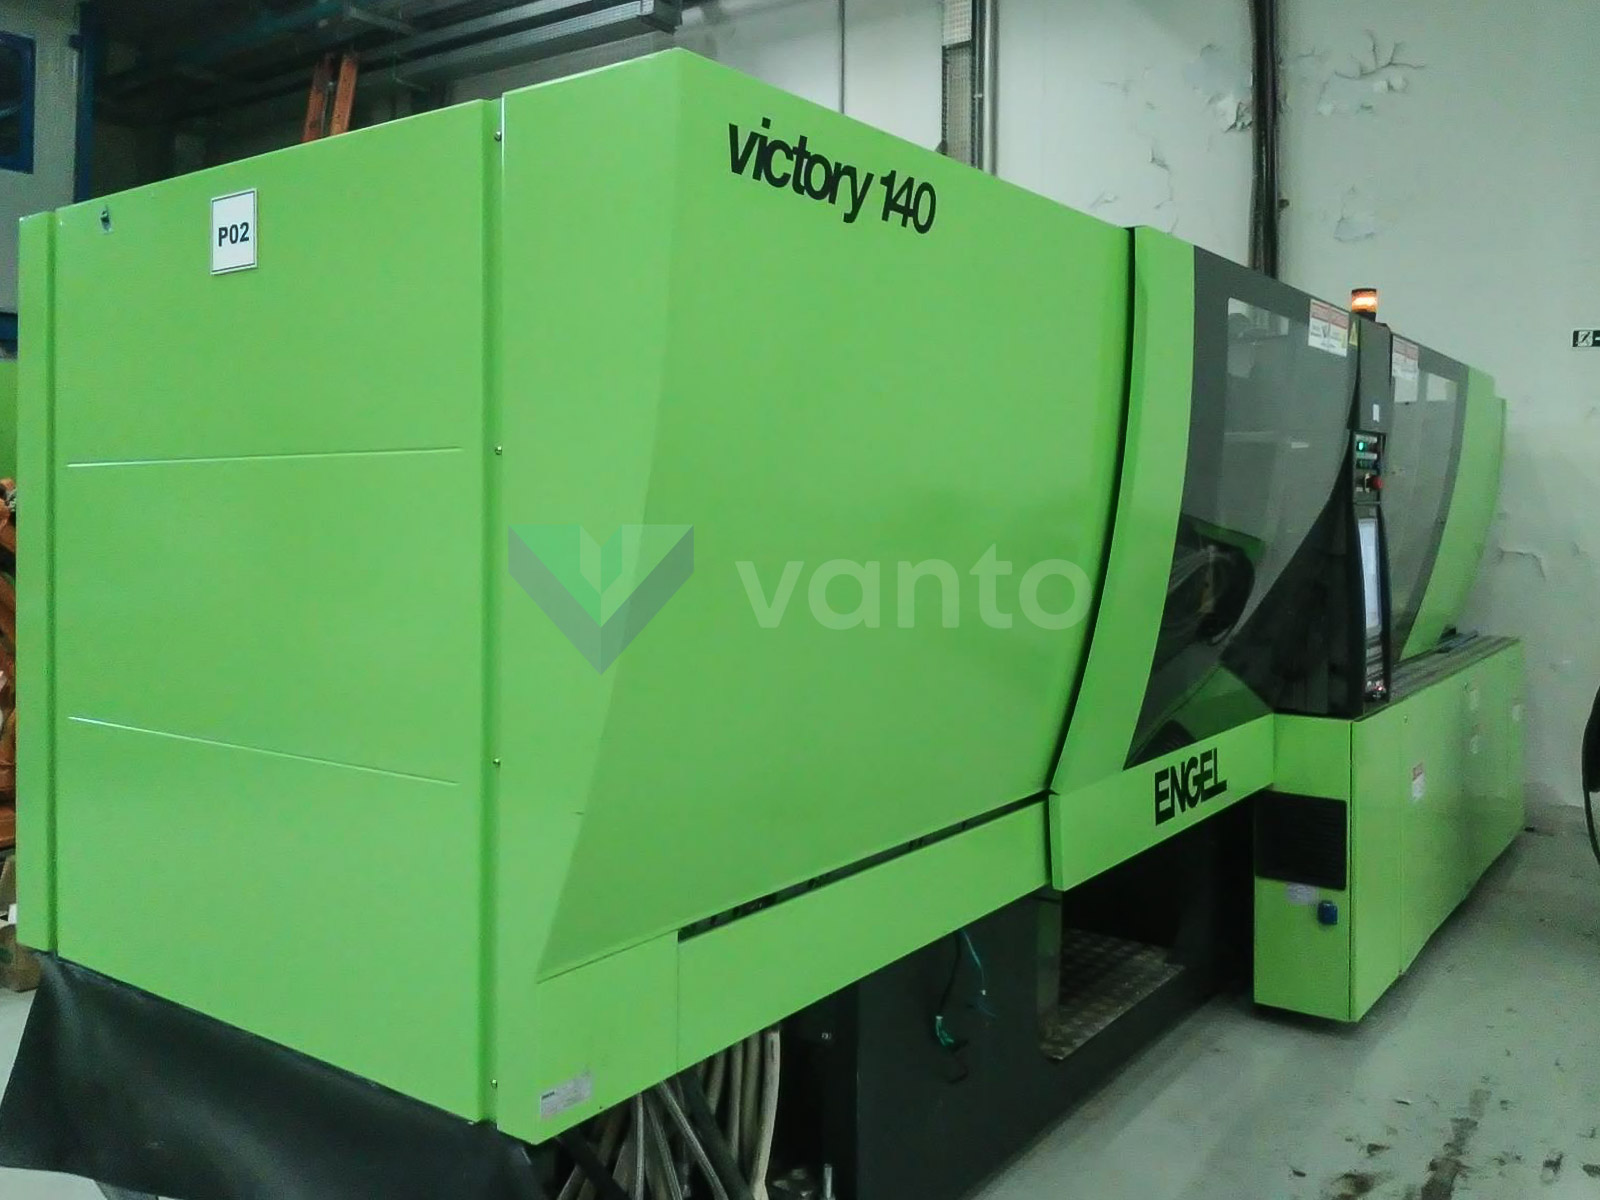 ENGEL VICTORY 330H / 80W 140 COMBI 140t injection molding machine (2013) id10426